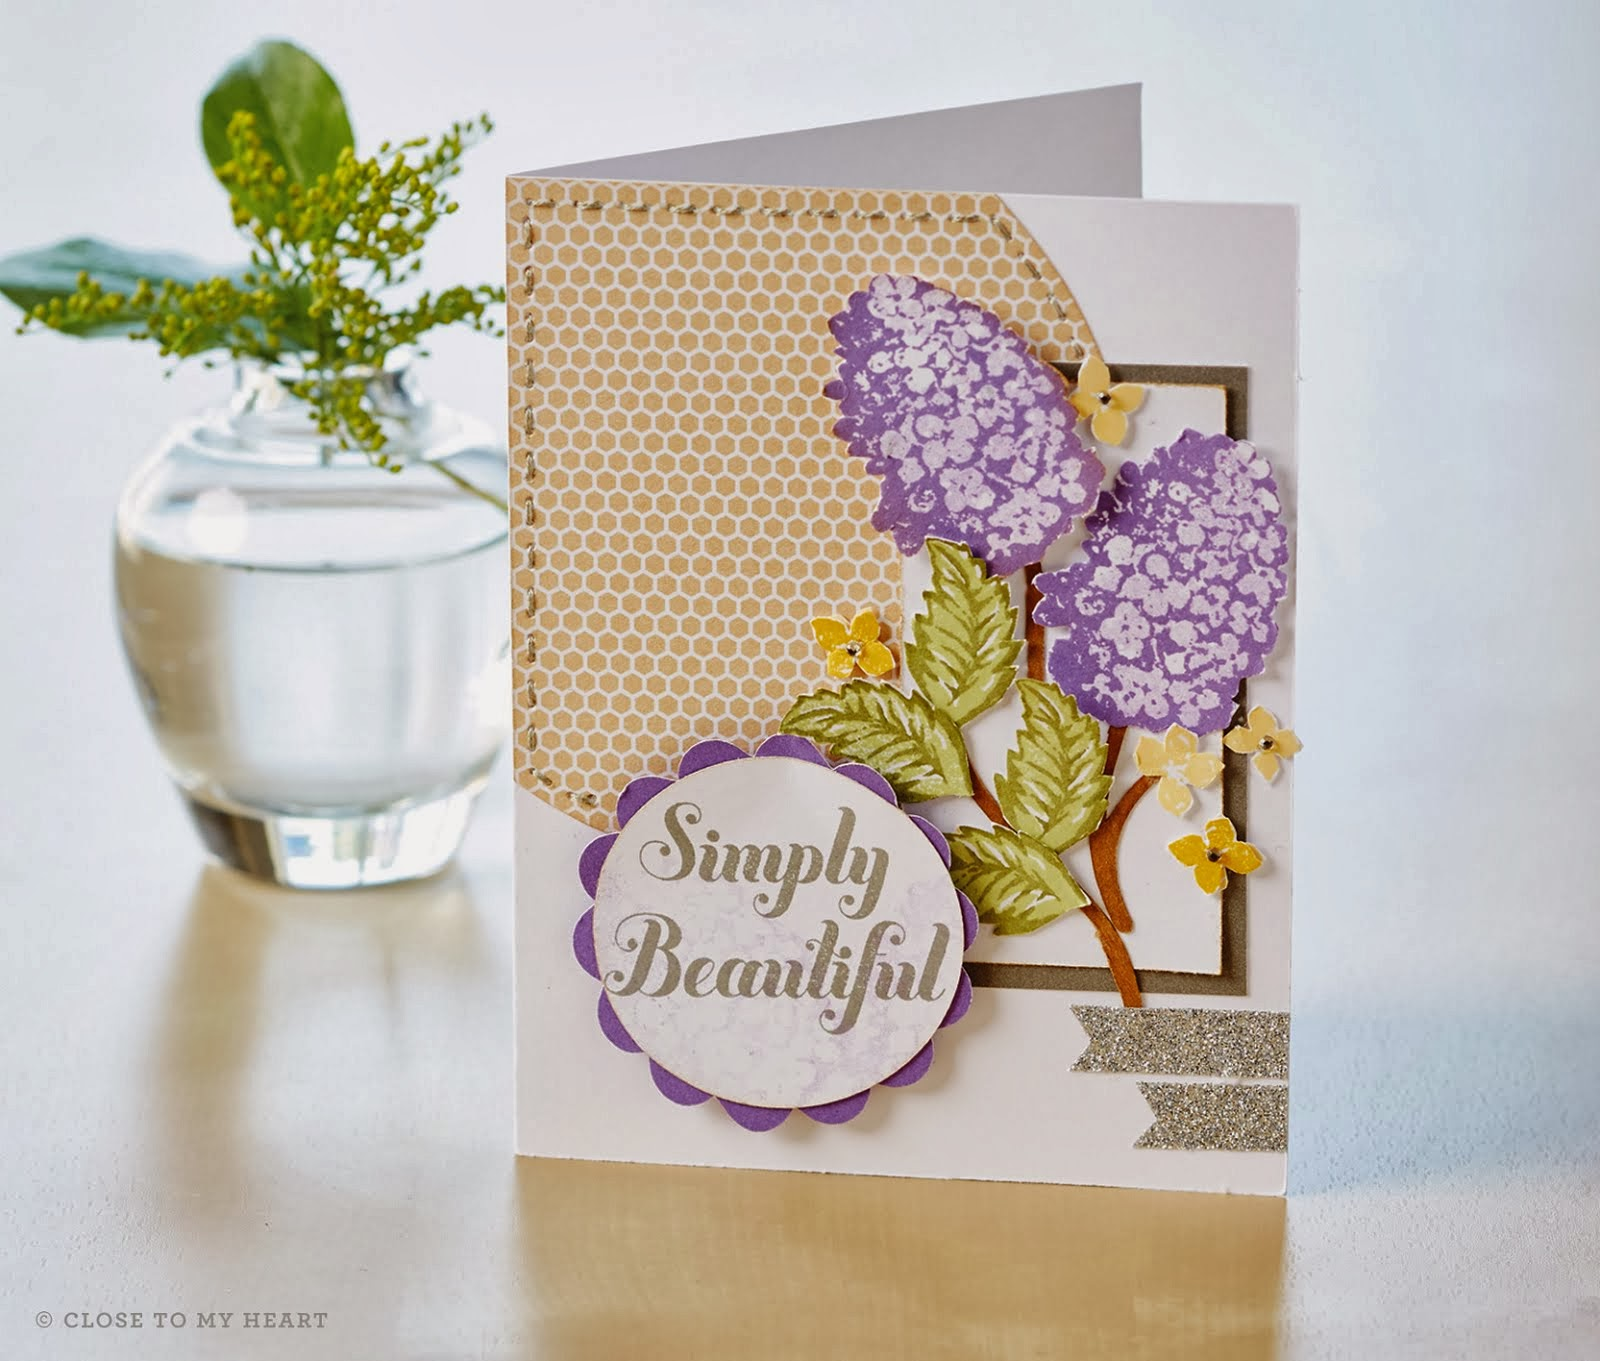 Want to have fun with friends AND earn FREE scrapbooking and stamping supplies?